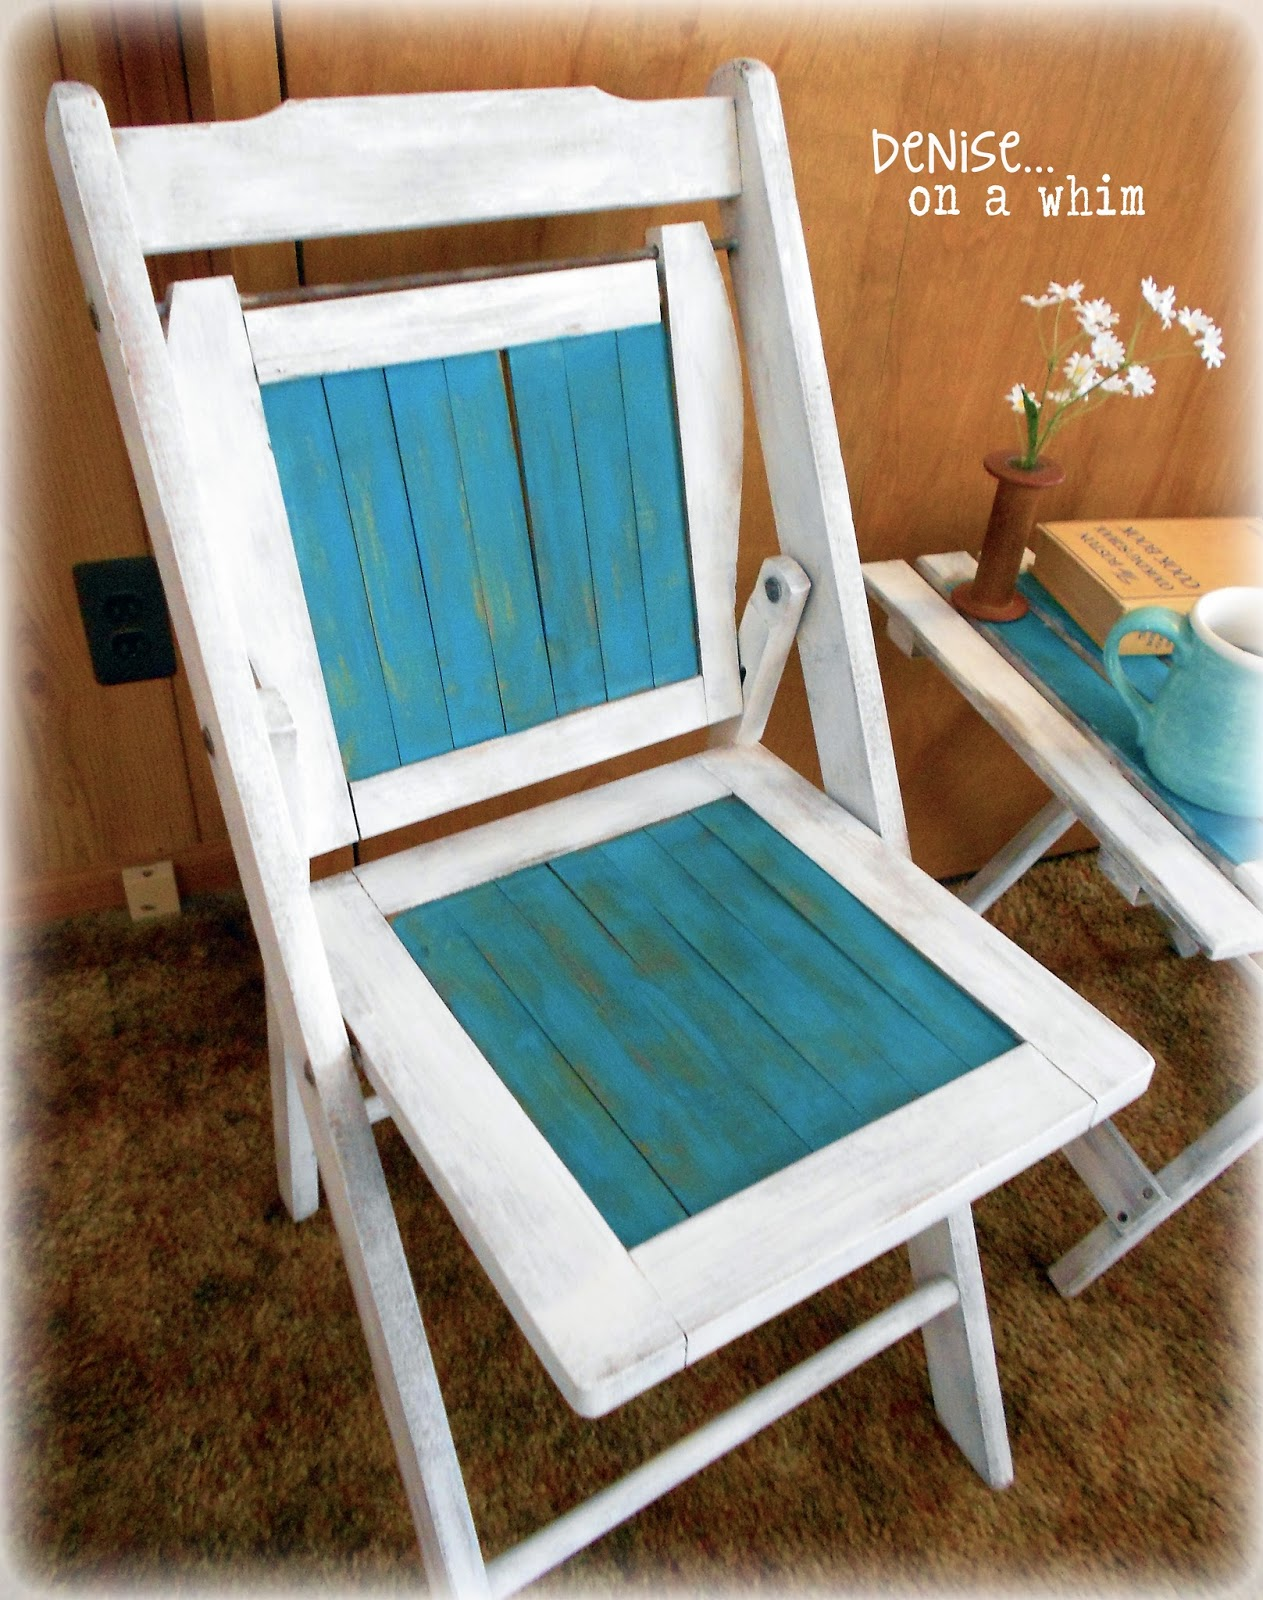 Vintage wooden folding chair via http://deniseonawhim.blogspot.com